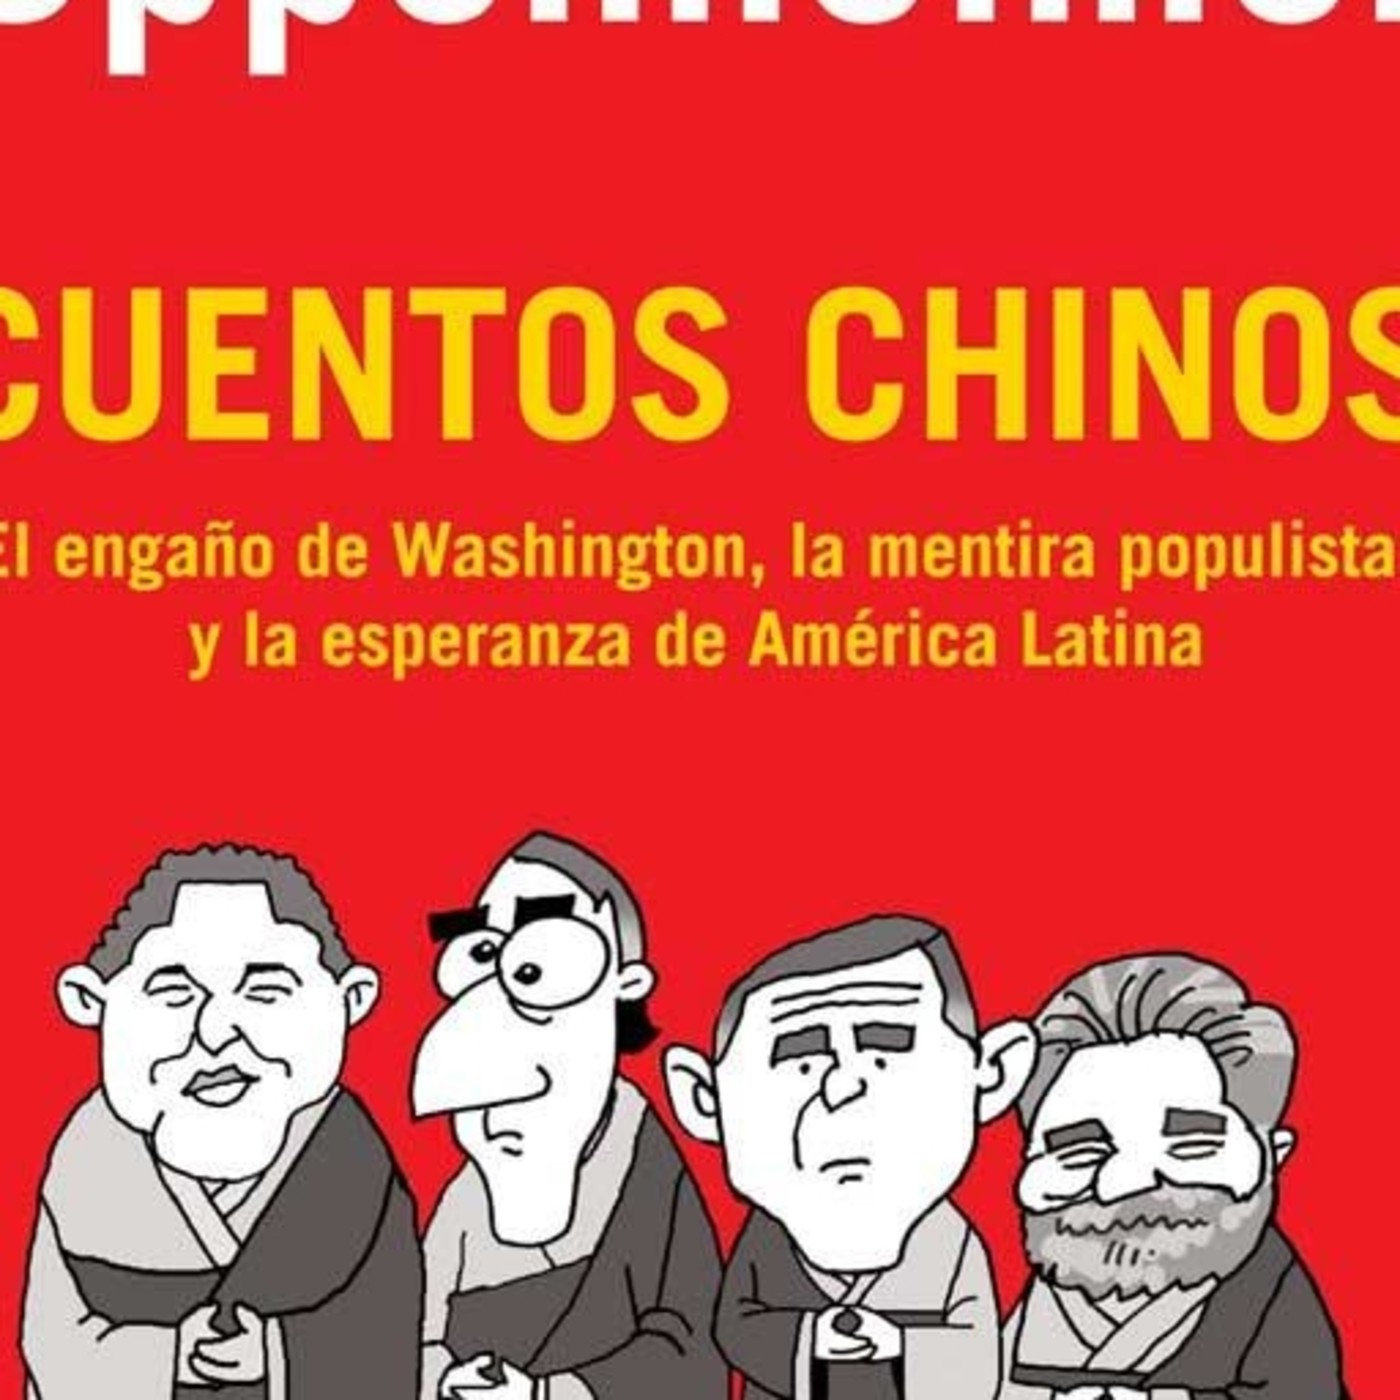 cuentos chinos andres oppenheimer pdf free download